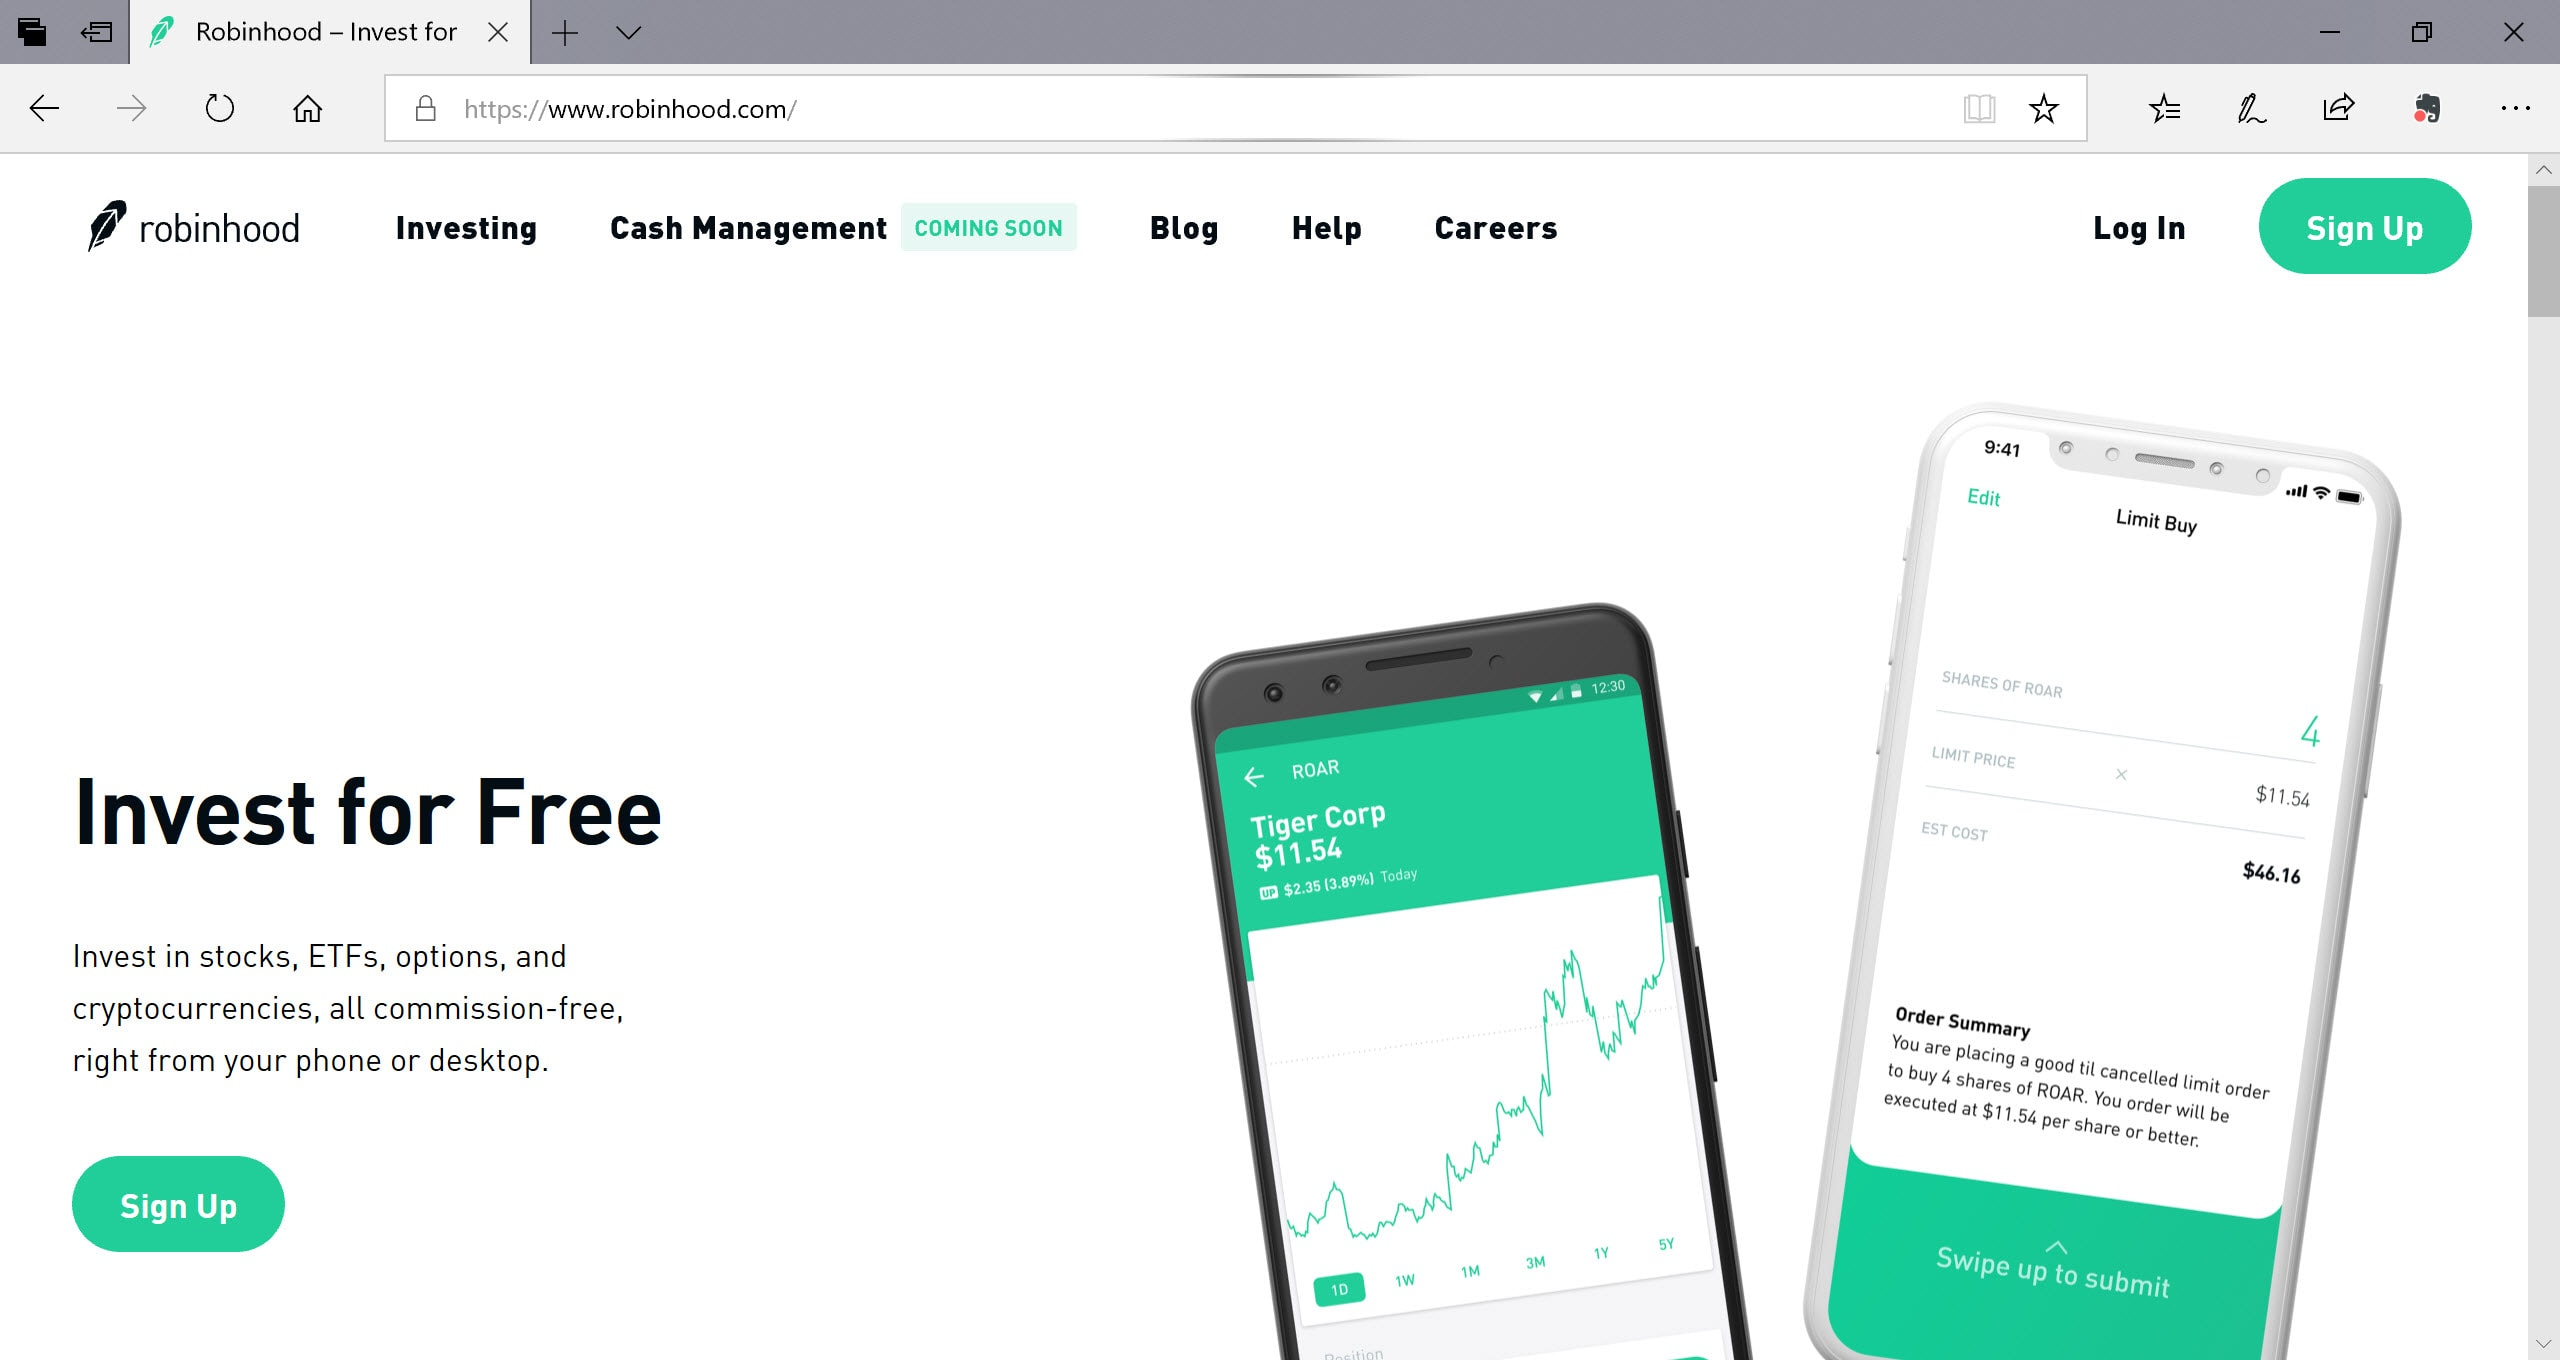 Robinhood Commission-Free Investing Coupon Code Student 2020